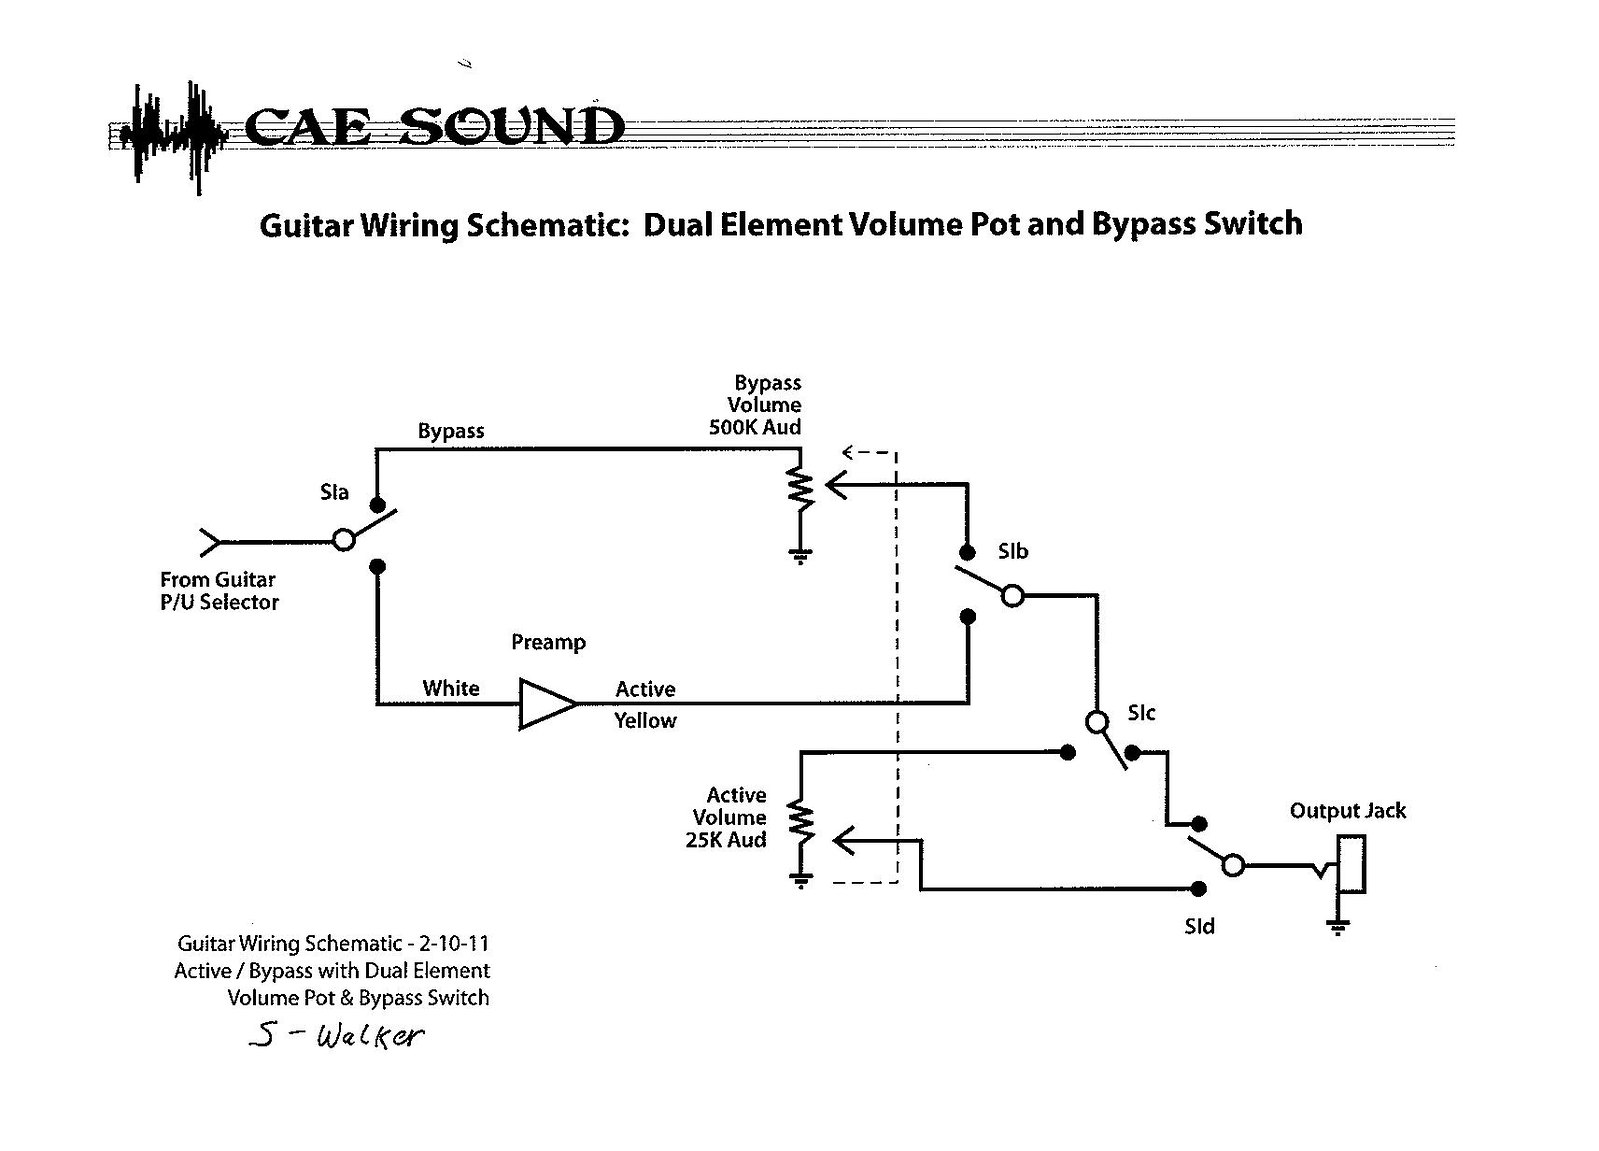 guitar wiring schematics data wiring diagram blog guitar wiring schematic database wiring diagram boat wiring schematics guitar wiring schematics